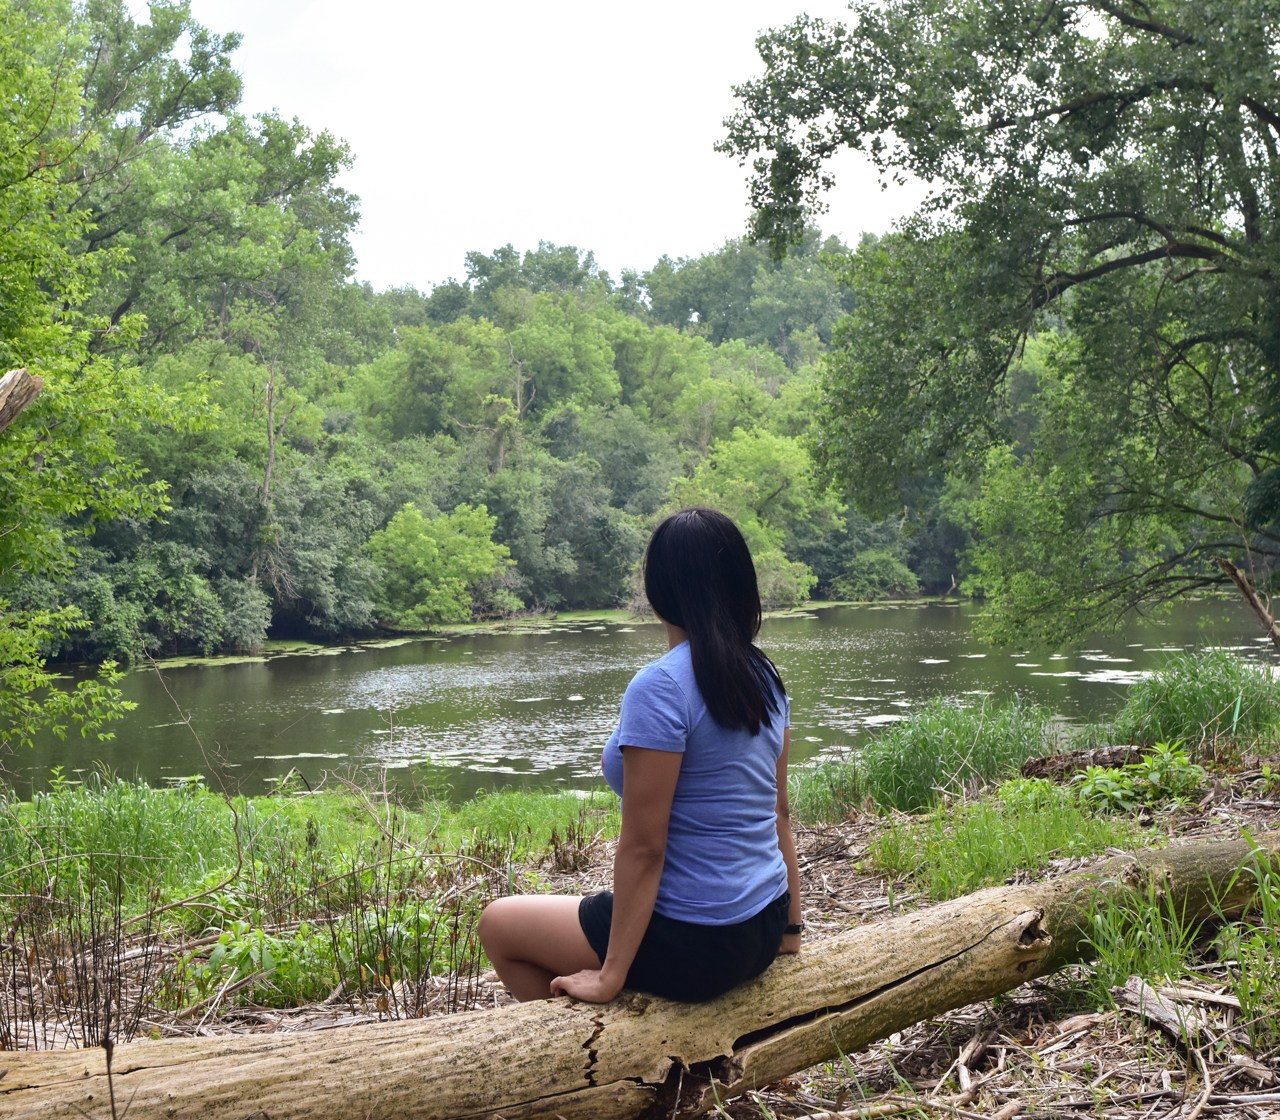 Exploring Skokie Lagoons, Illinois